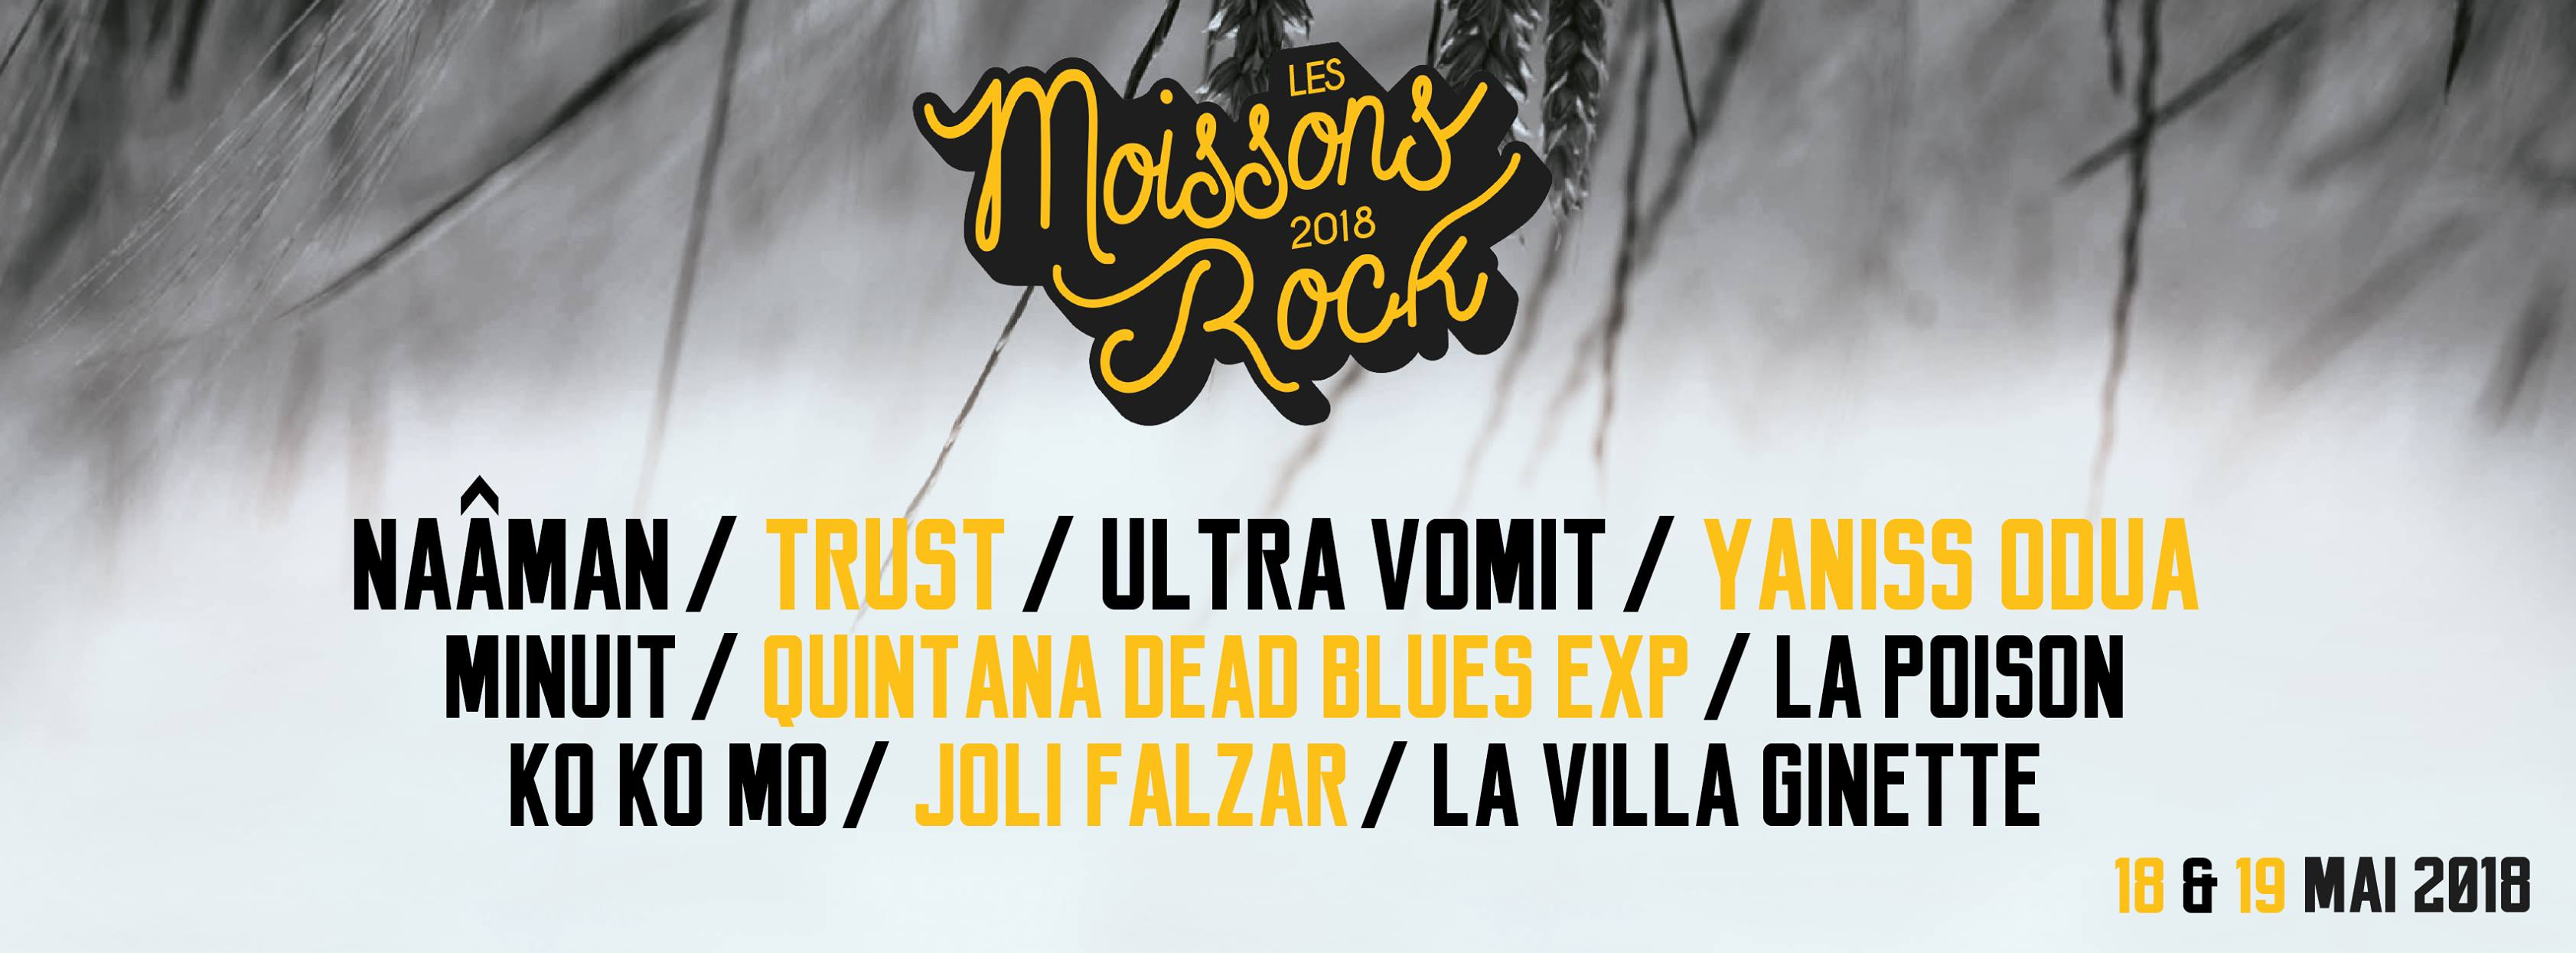 LES MOISSONS ROCK